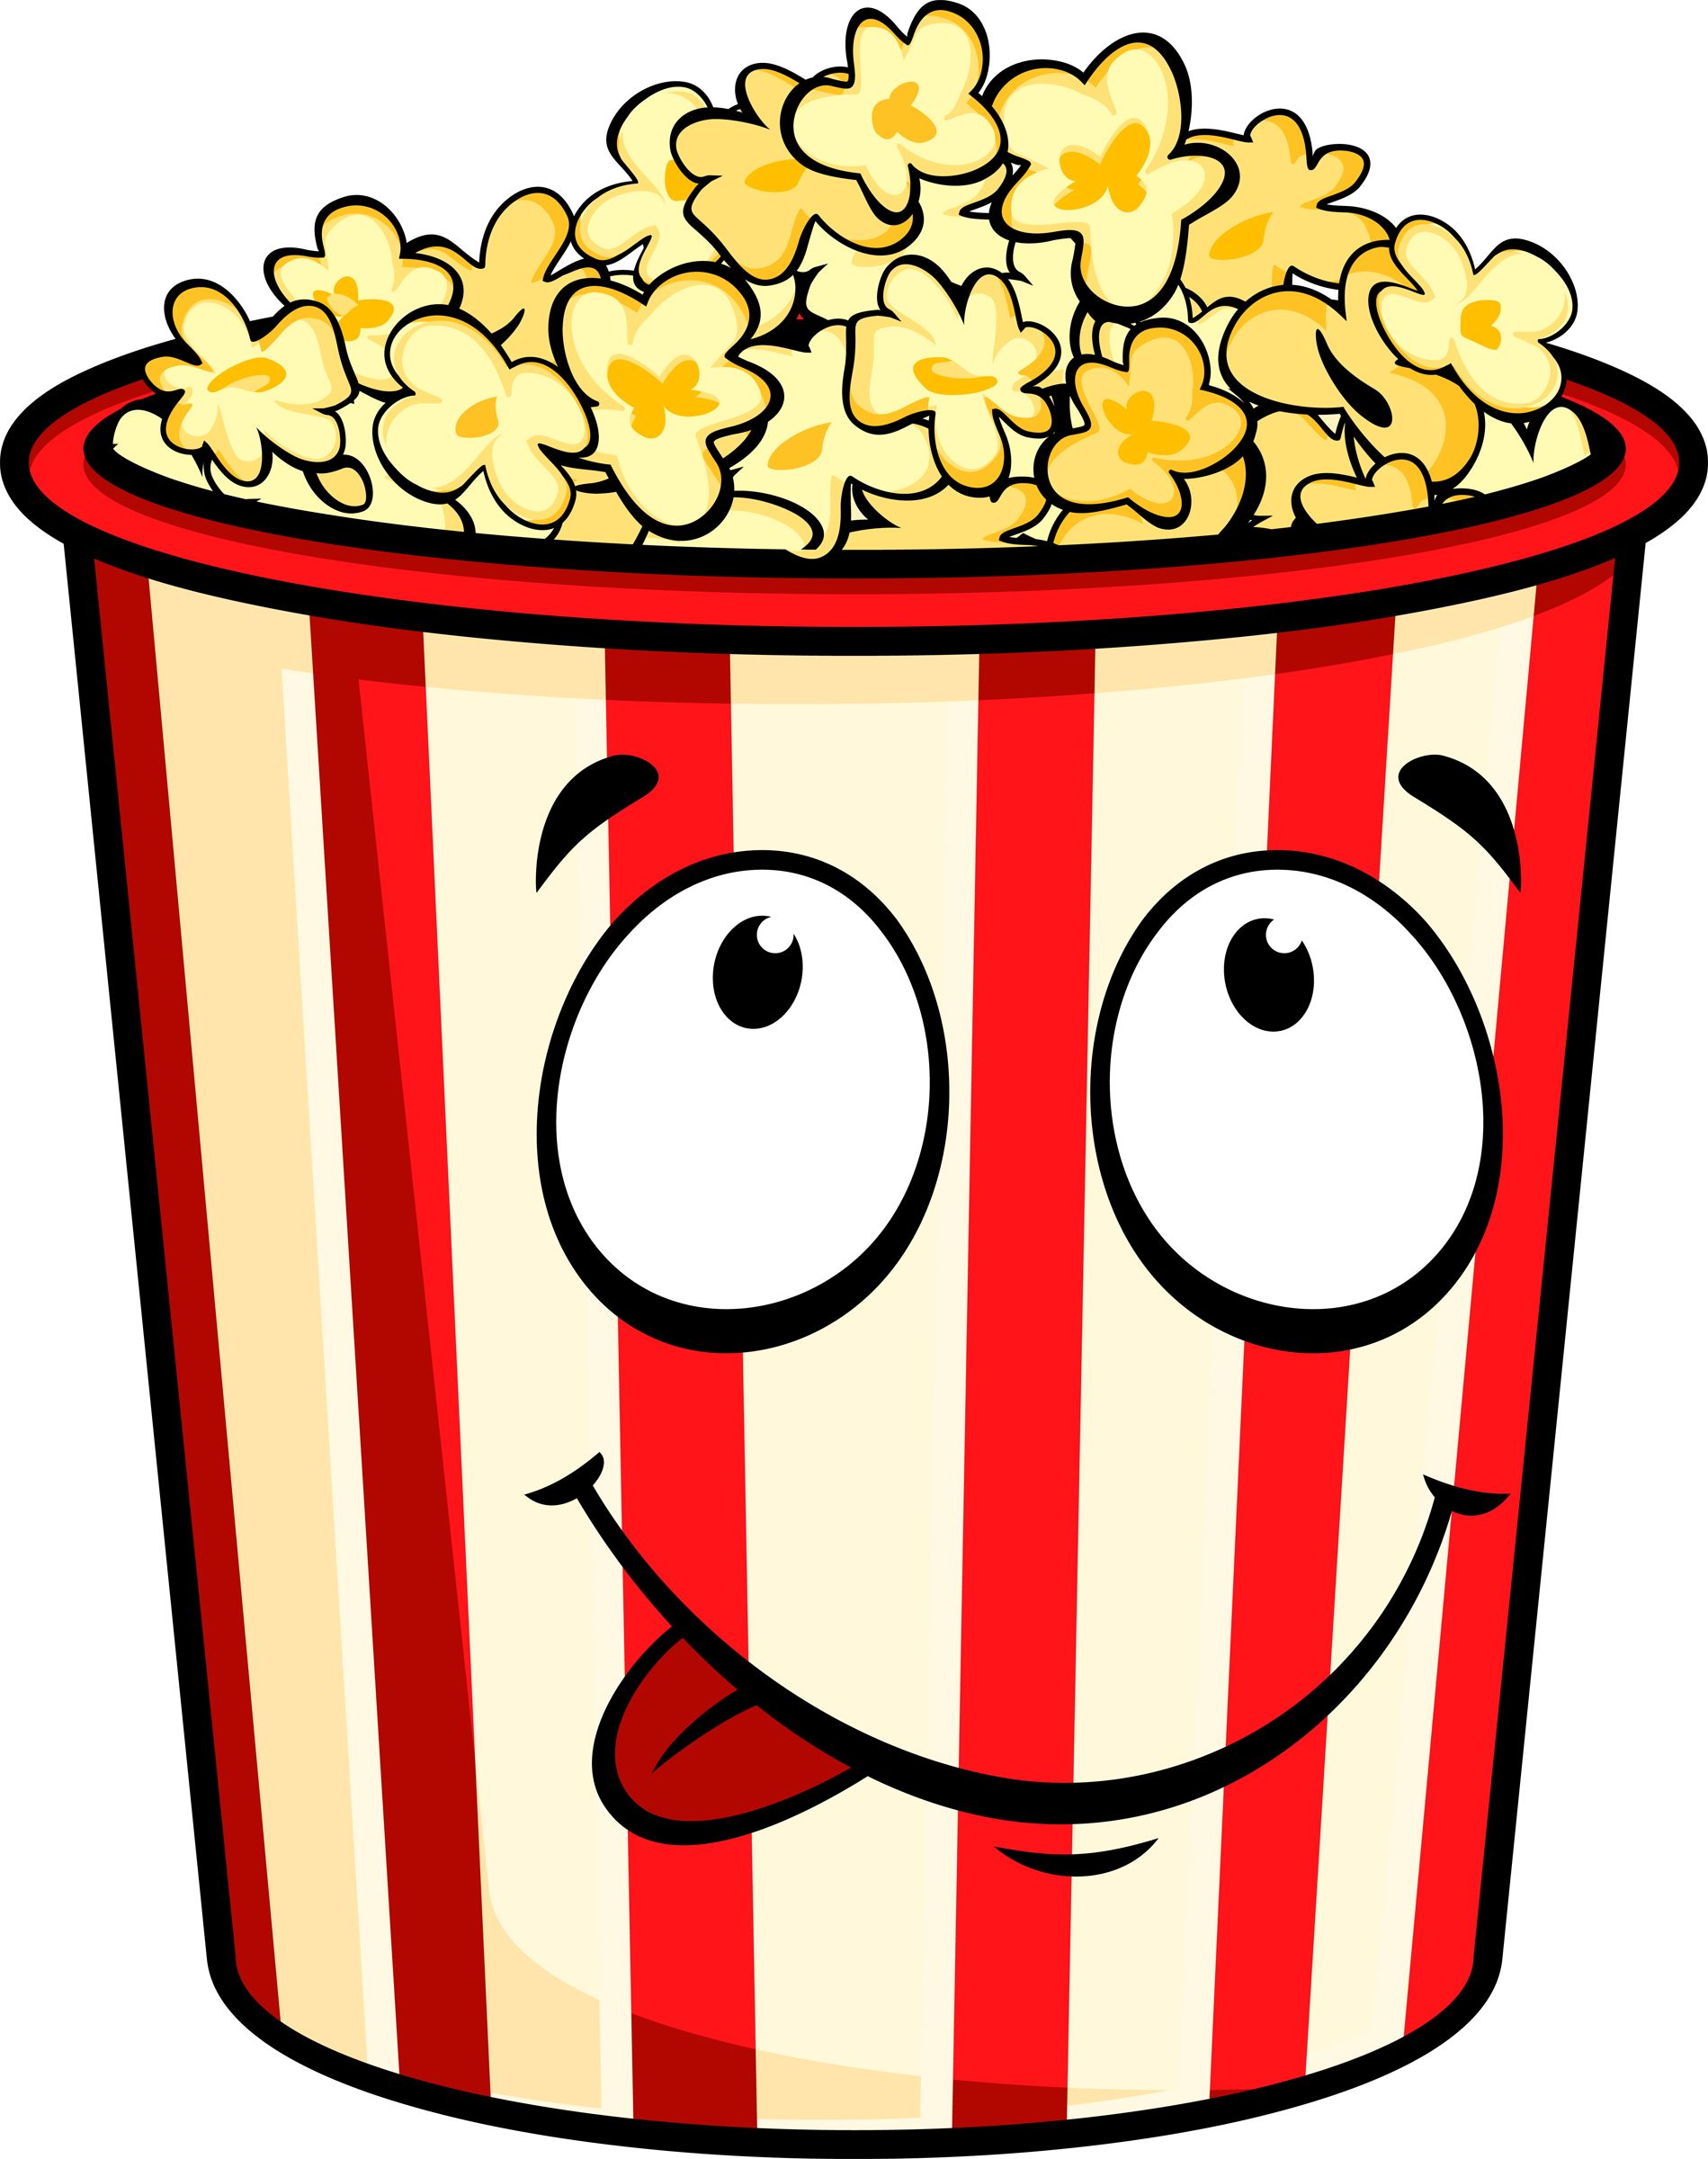 Clipart phorn movies black and white download Movie And Popcorn Clipart. Search for \